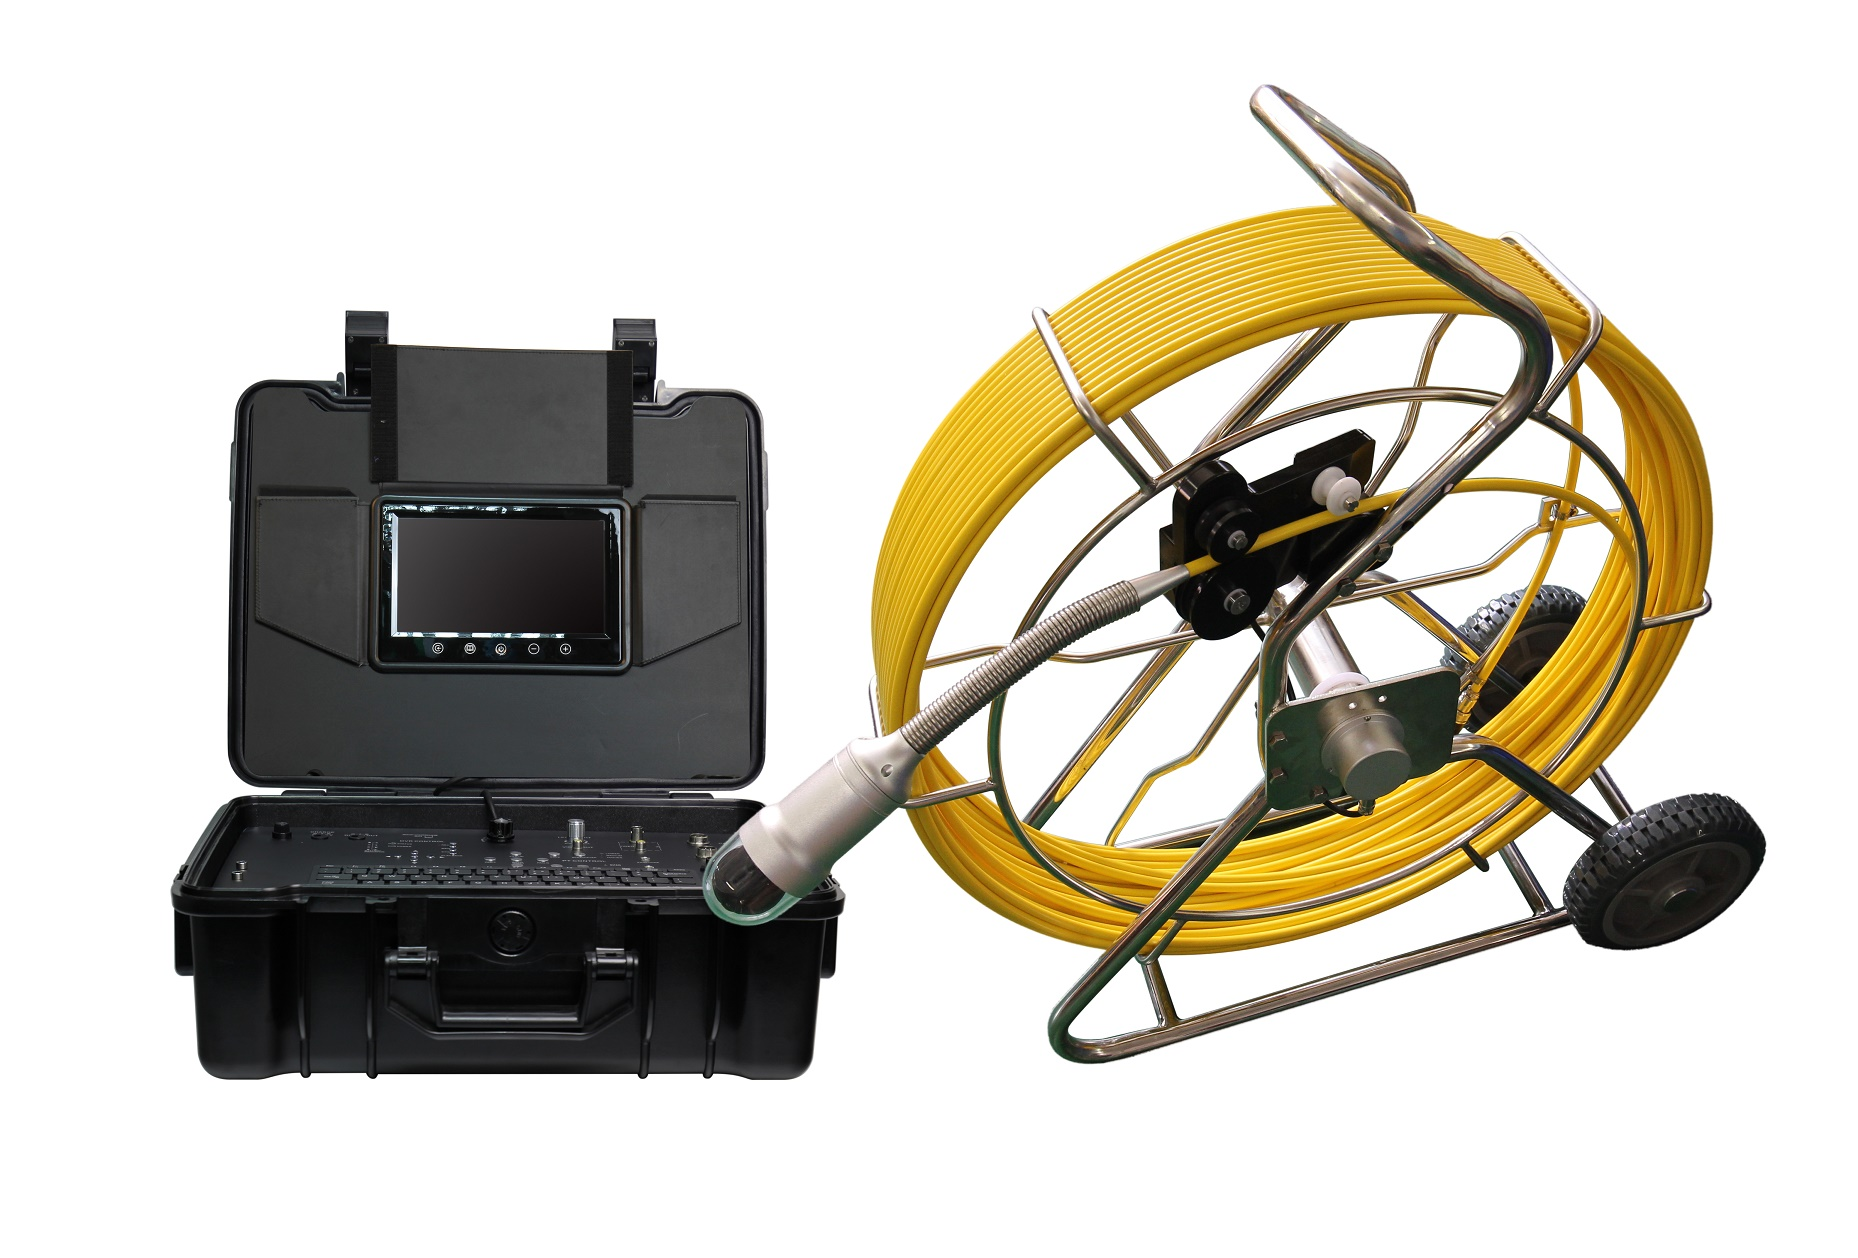 WOPSON 120m 360 rotation pipe sewer inspection camera